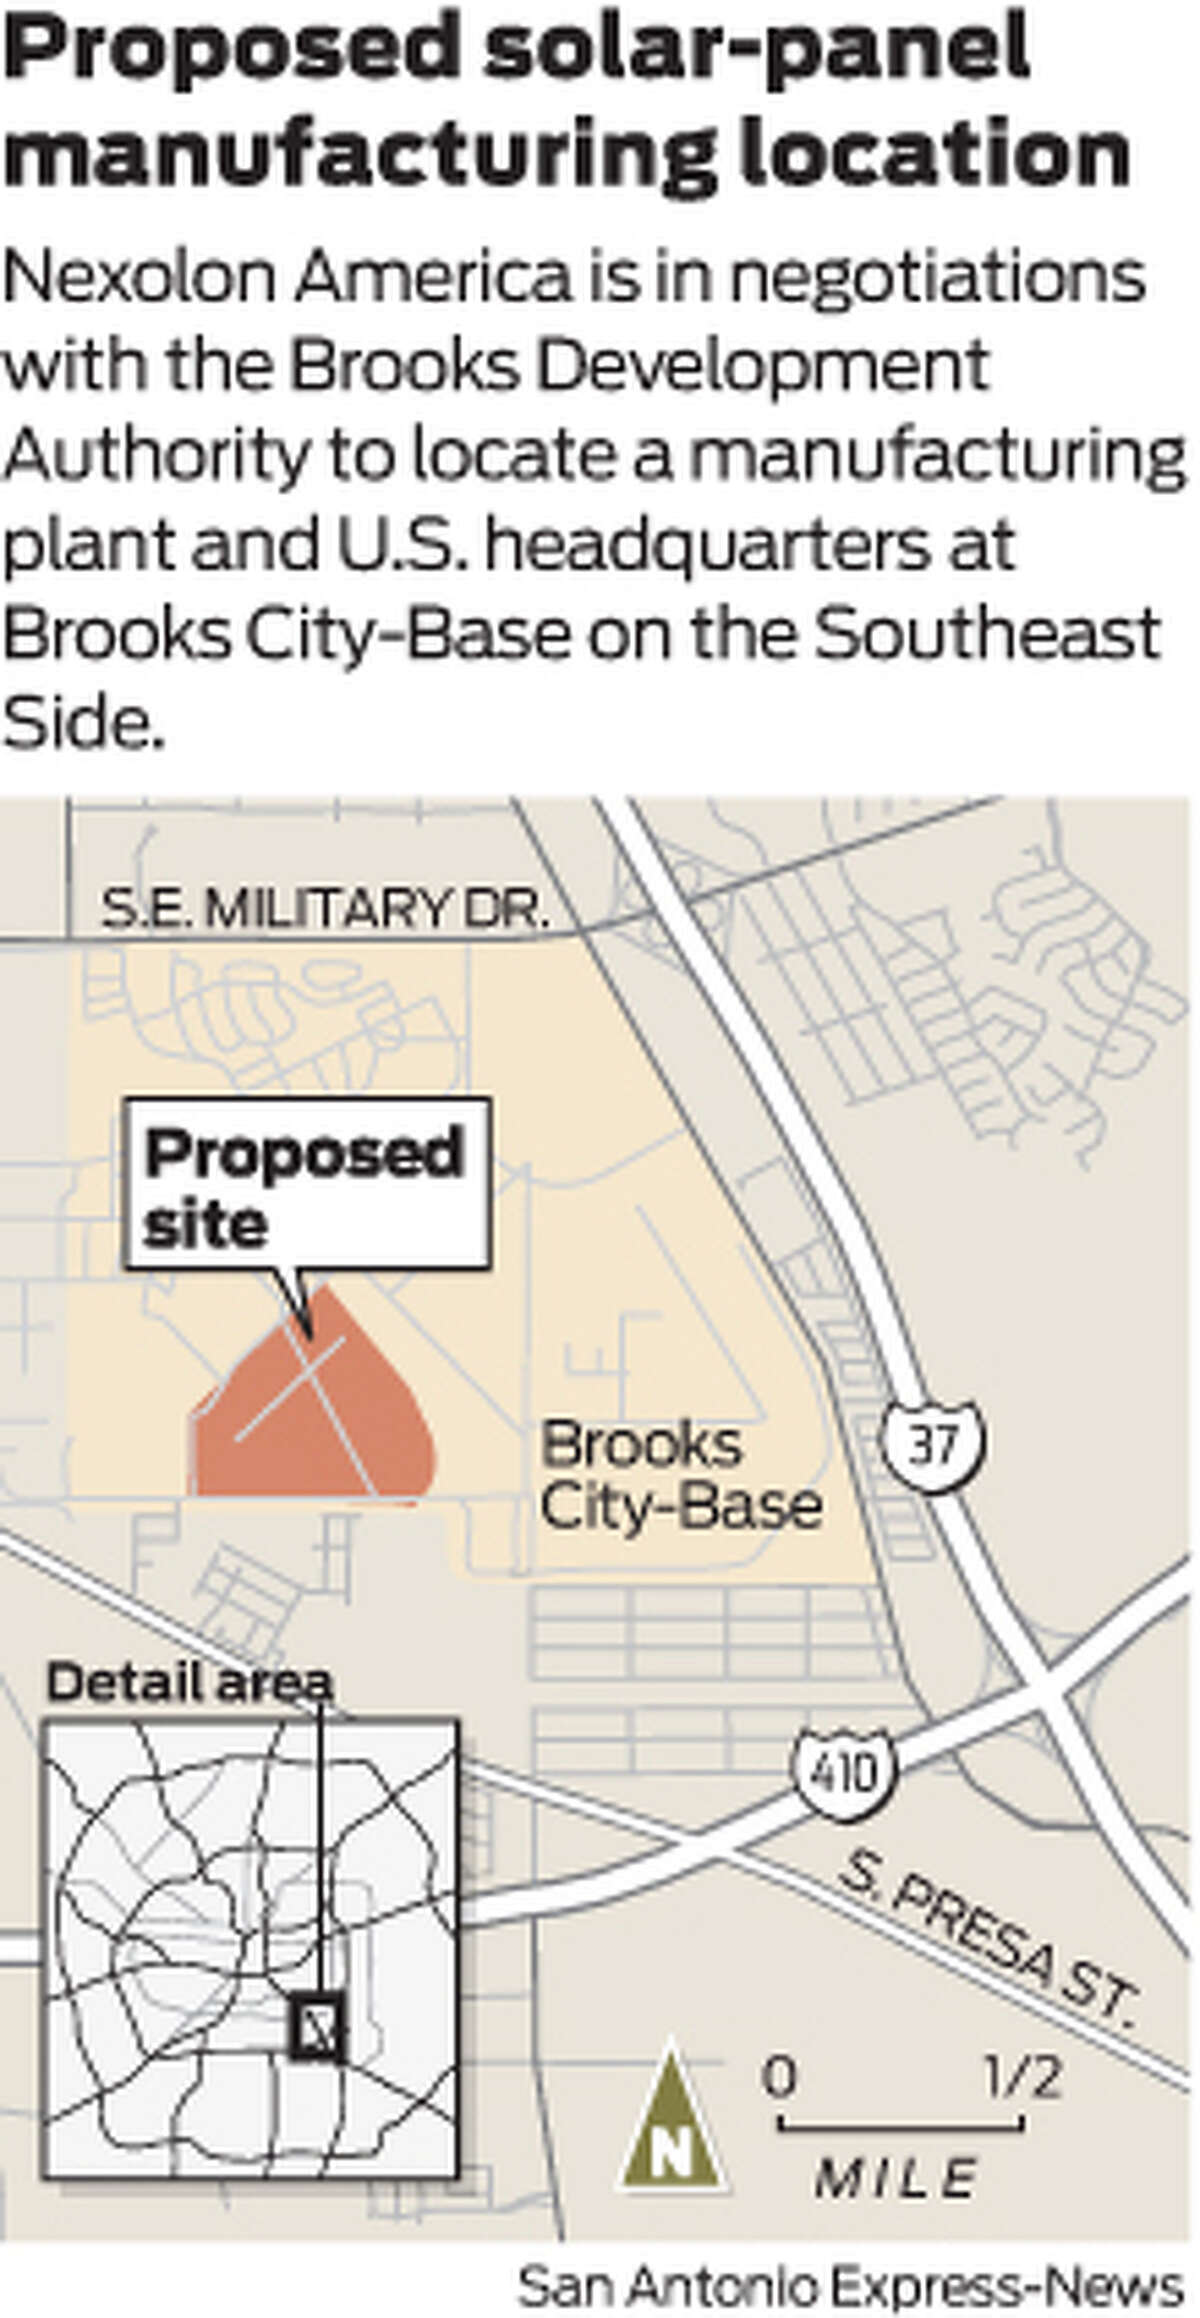 Nexolon America is in negotiations with the Brooks Development Authority to locate a manufacturing plant and U.S. headquarters at Brooks City-Base on the Southeast Side.